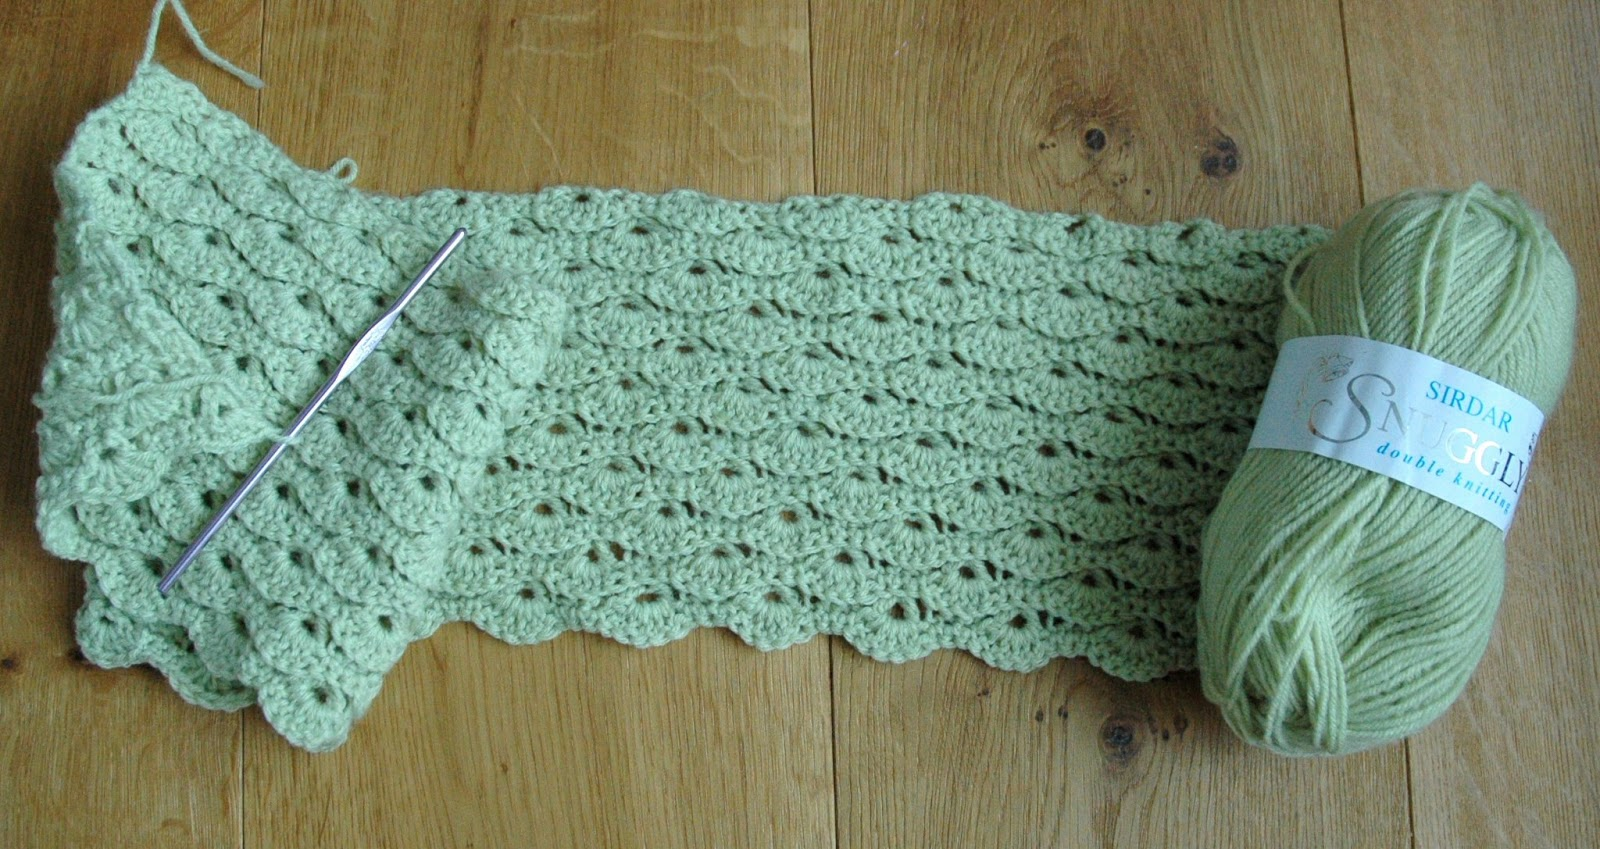 Crocheting Uk : If you are pregnant and you know me, stop reading right now!Otherwise ...